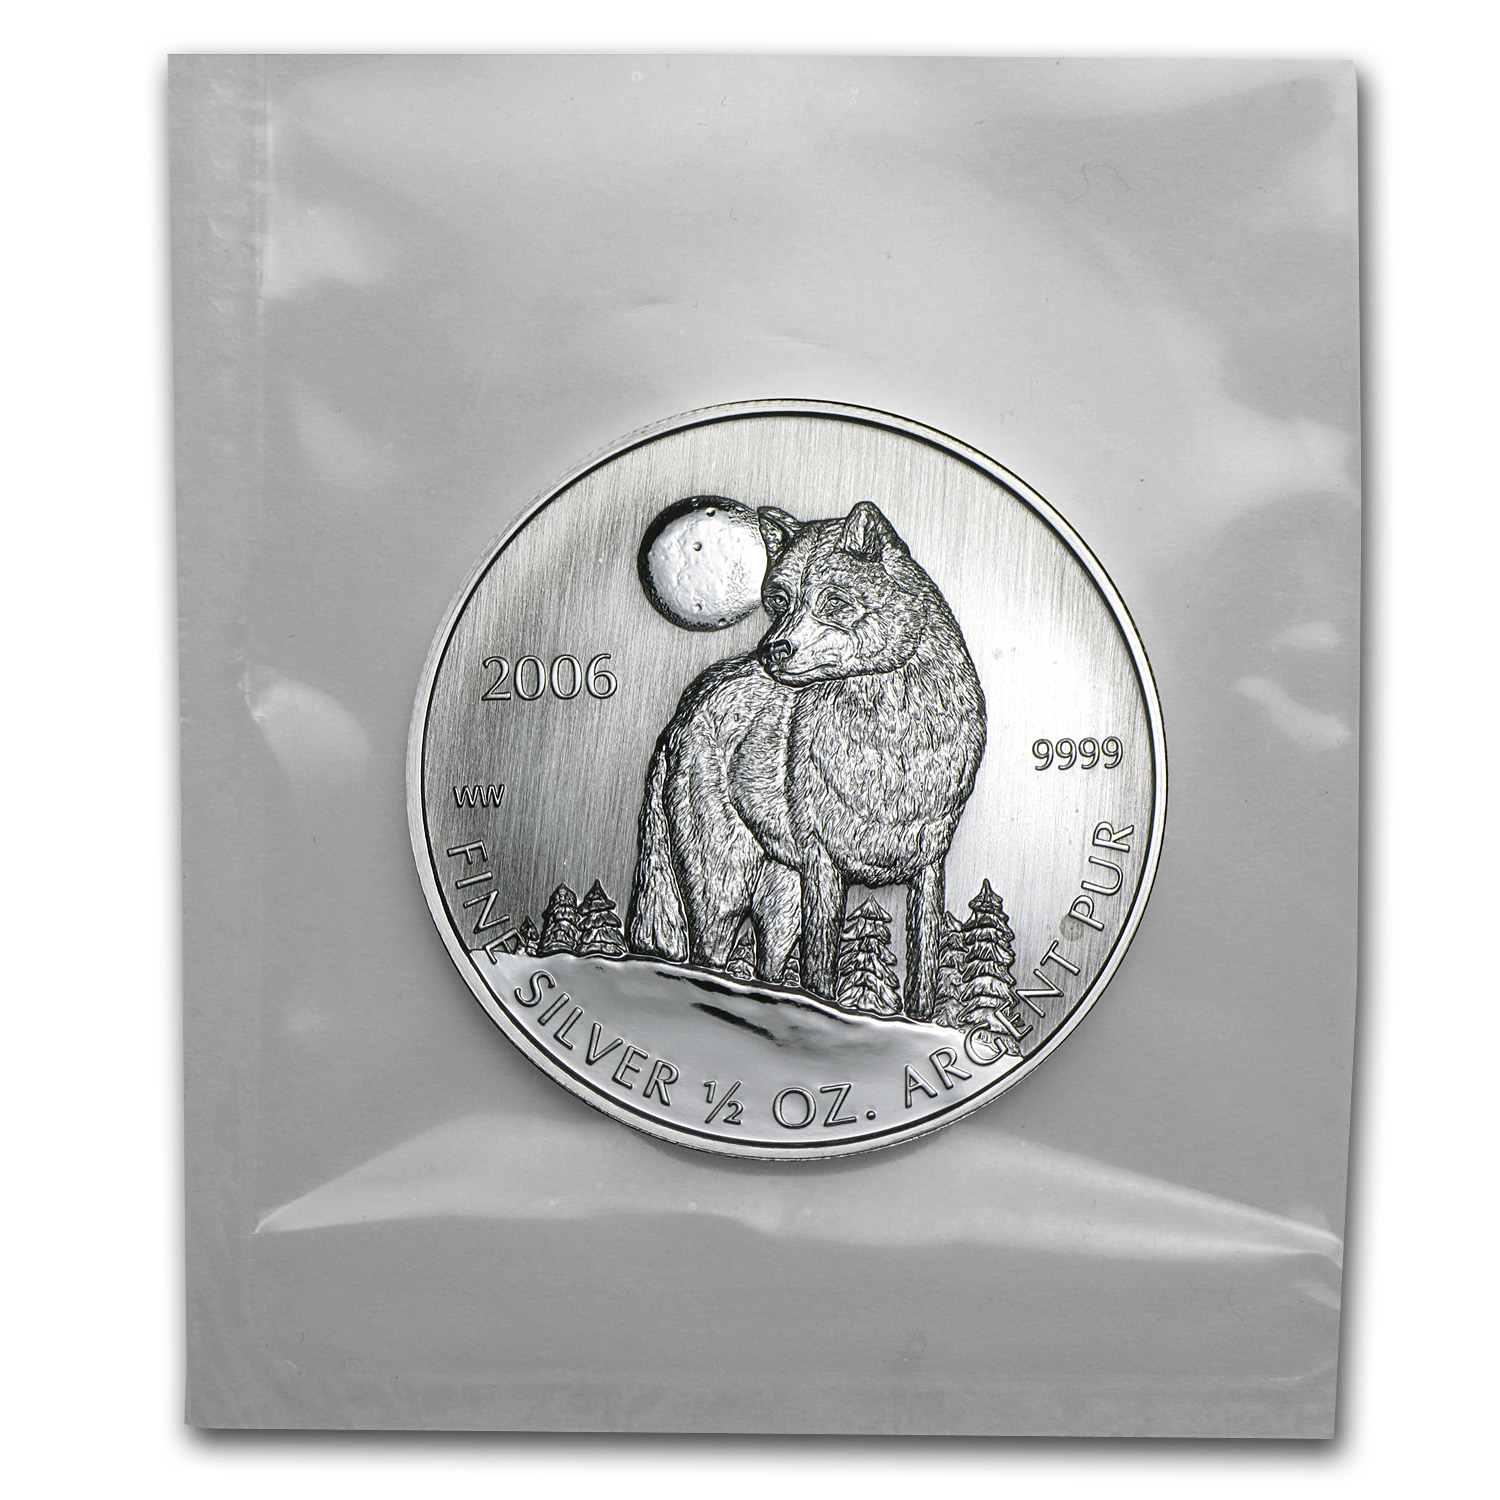 2006 Canada 1/2 oz Silver Timber Wolf Coin (Sealed)